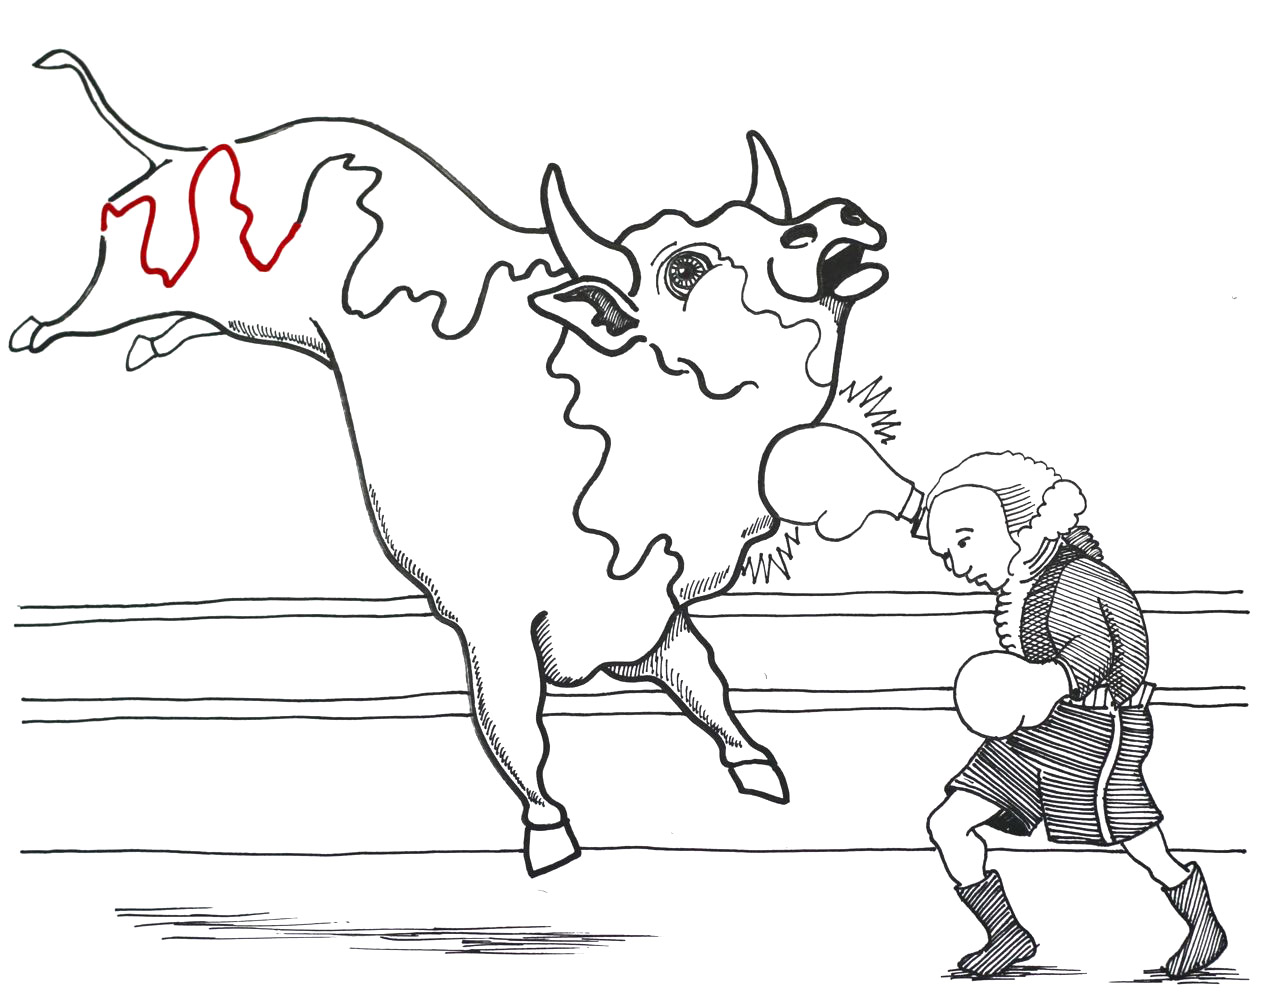 27-George Washington fighting a bull-finish